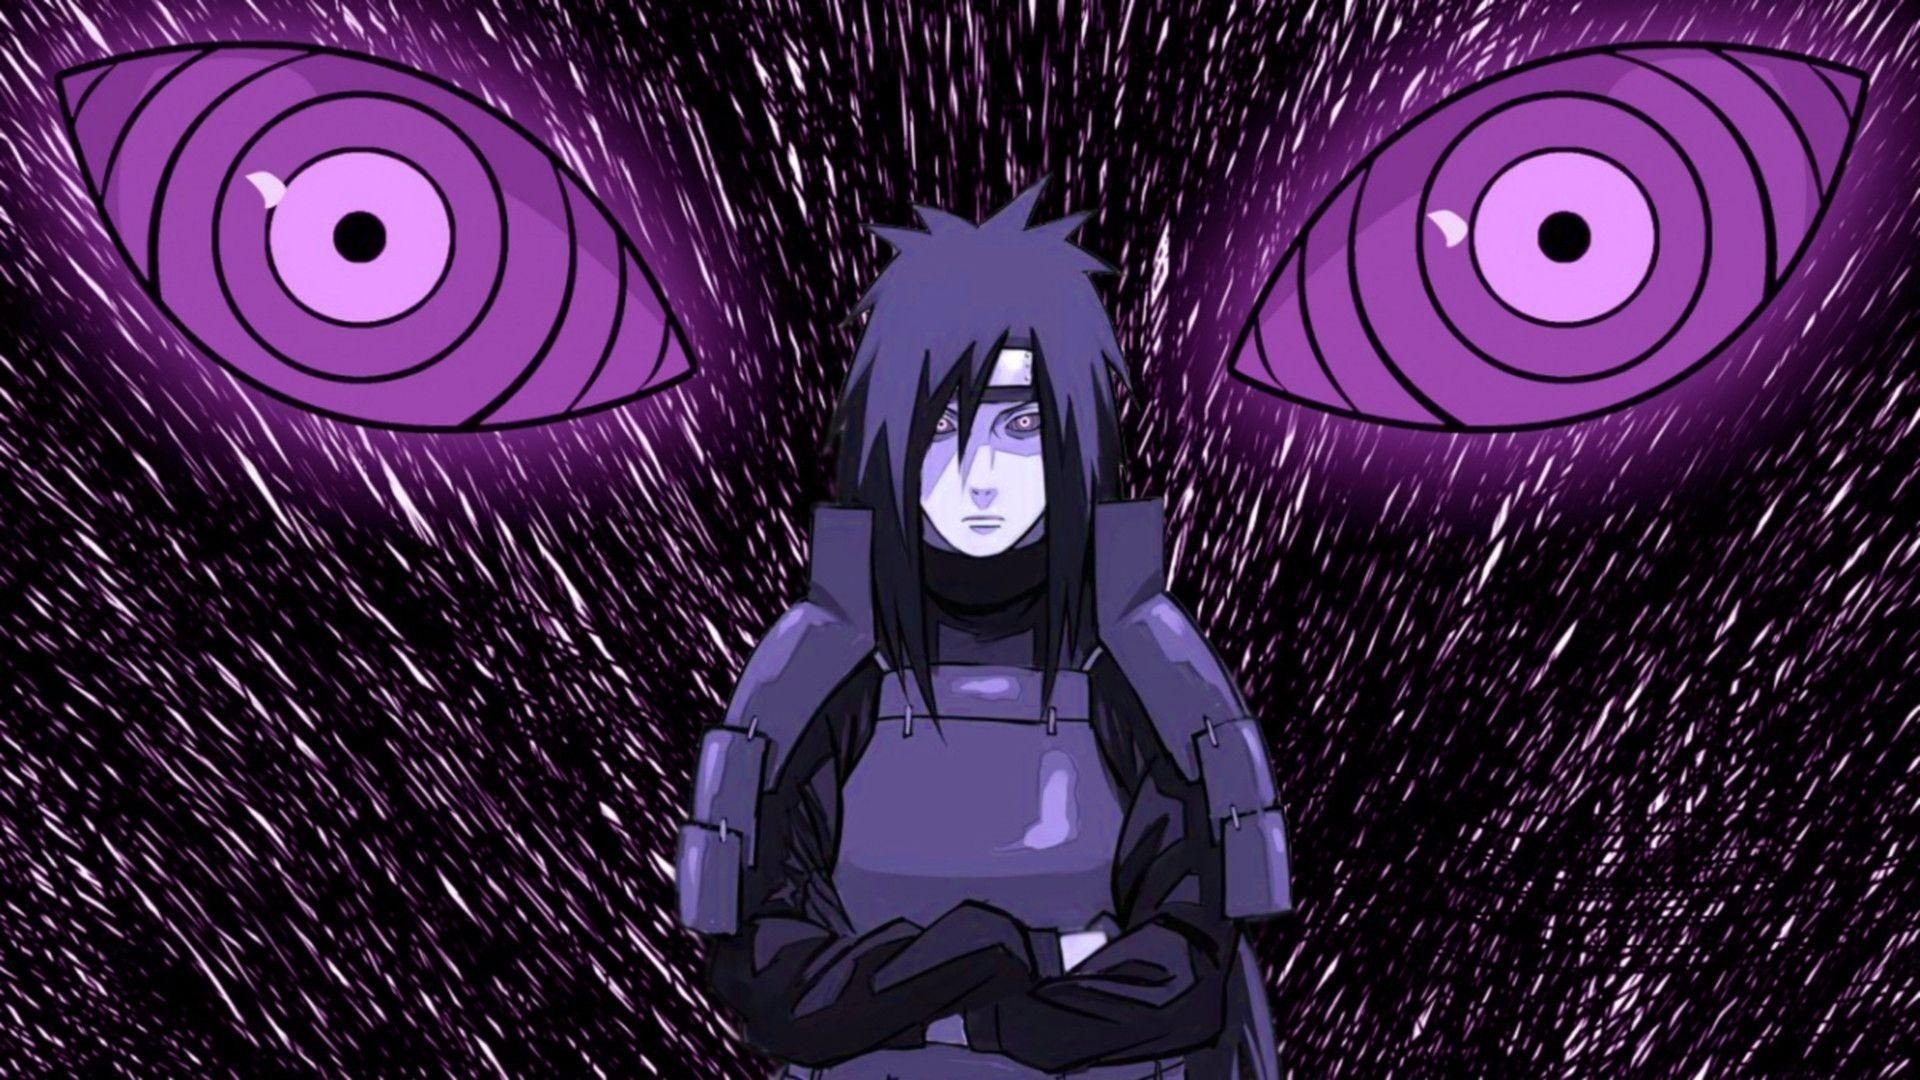 Madara Wallpapers 73 Background Pictures Find the best madara uchiha wallpaper on wallpapertag. pavbca com